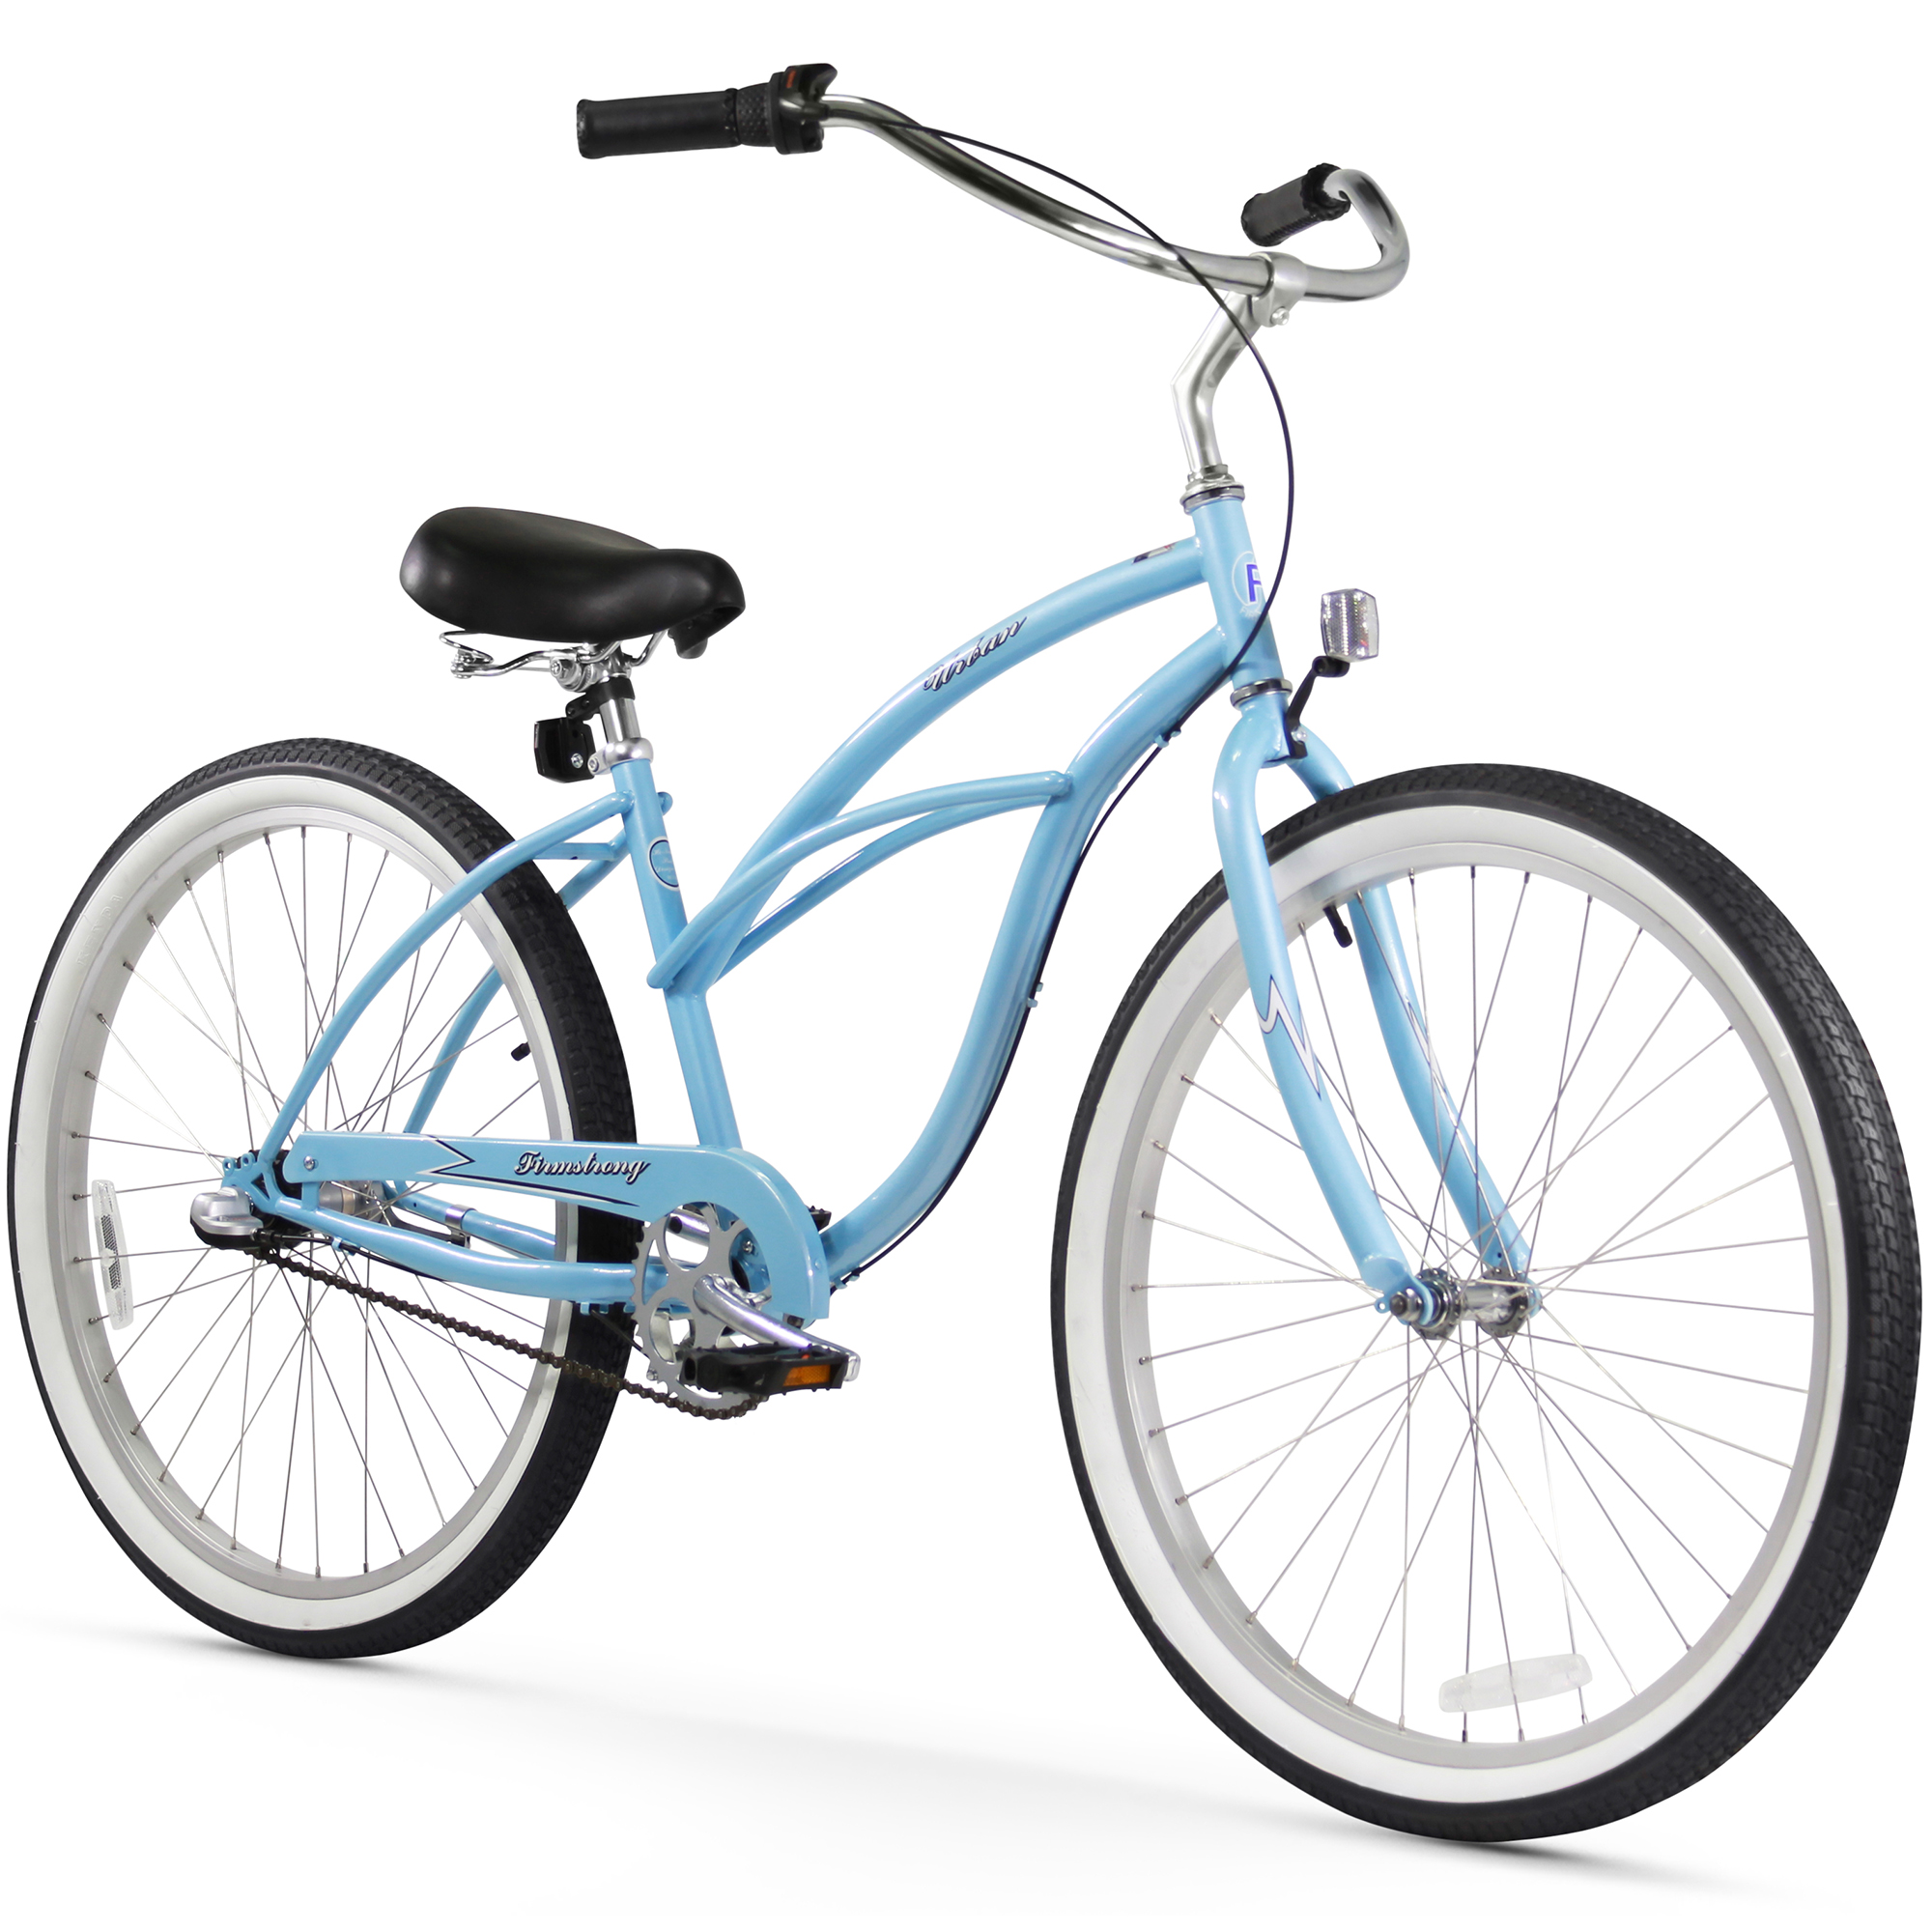 "24"" Firmstrong Urban Lady Three Speed Women's Beach Cruiser Bike, Baby Blue"